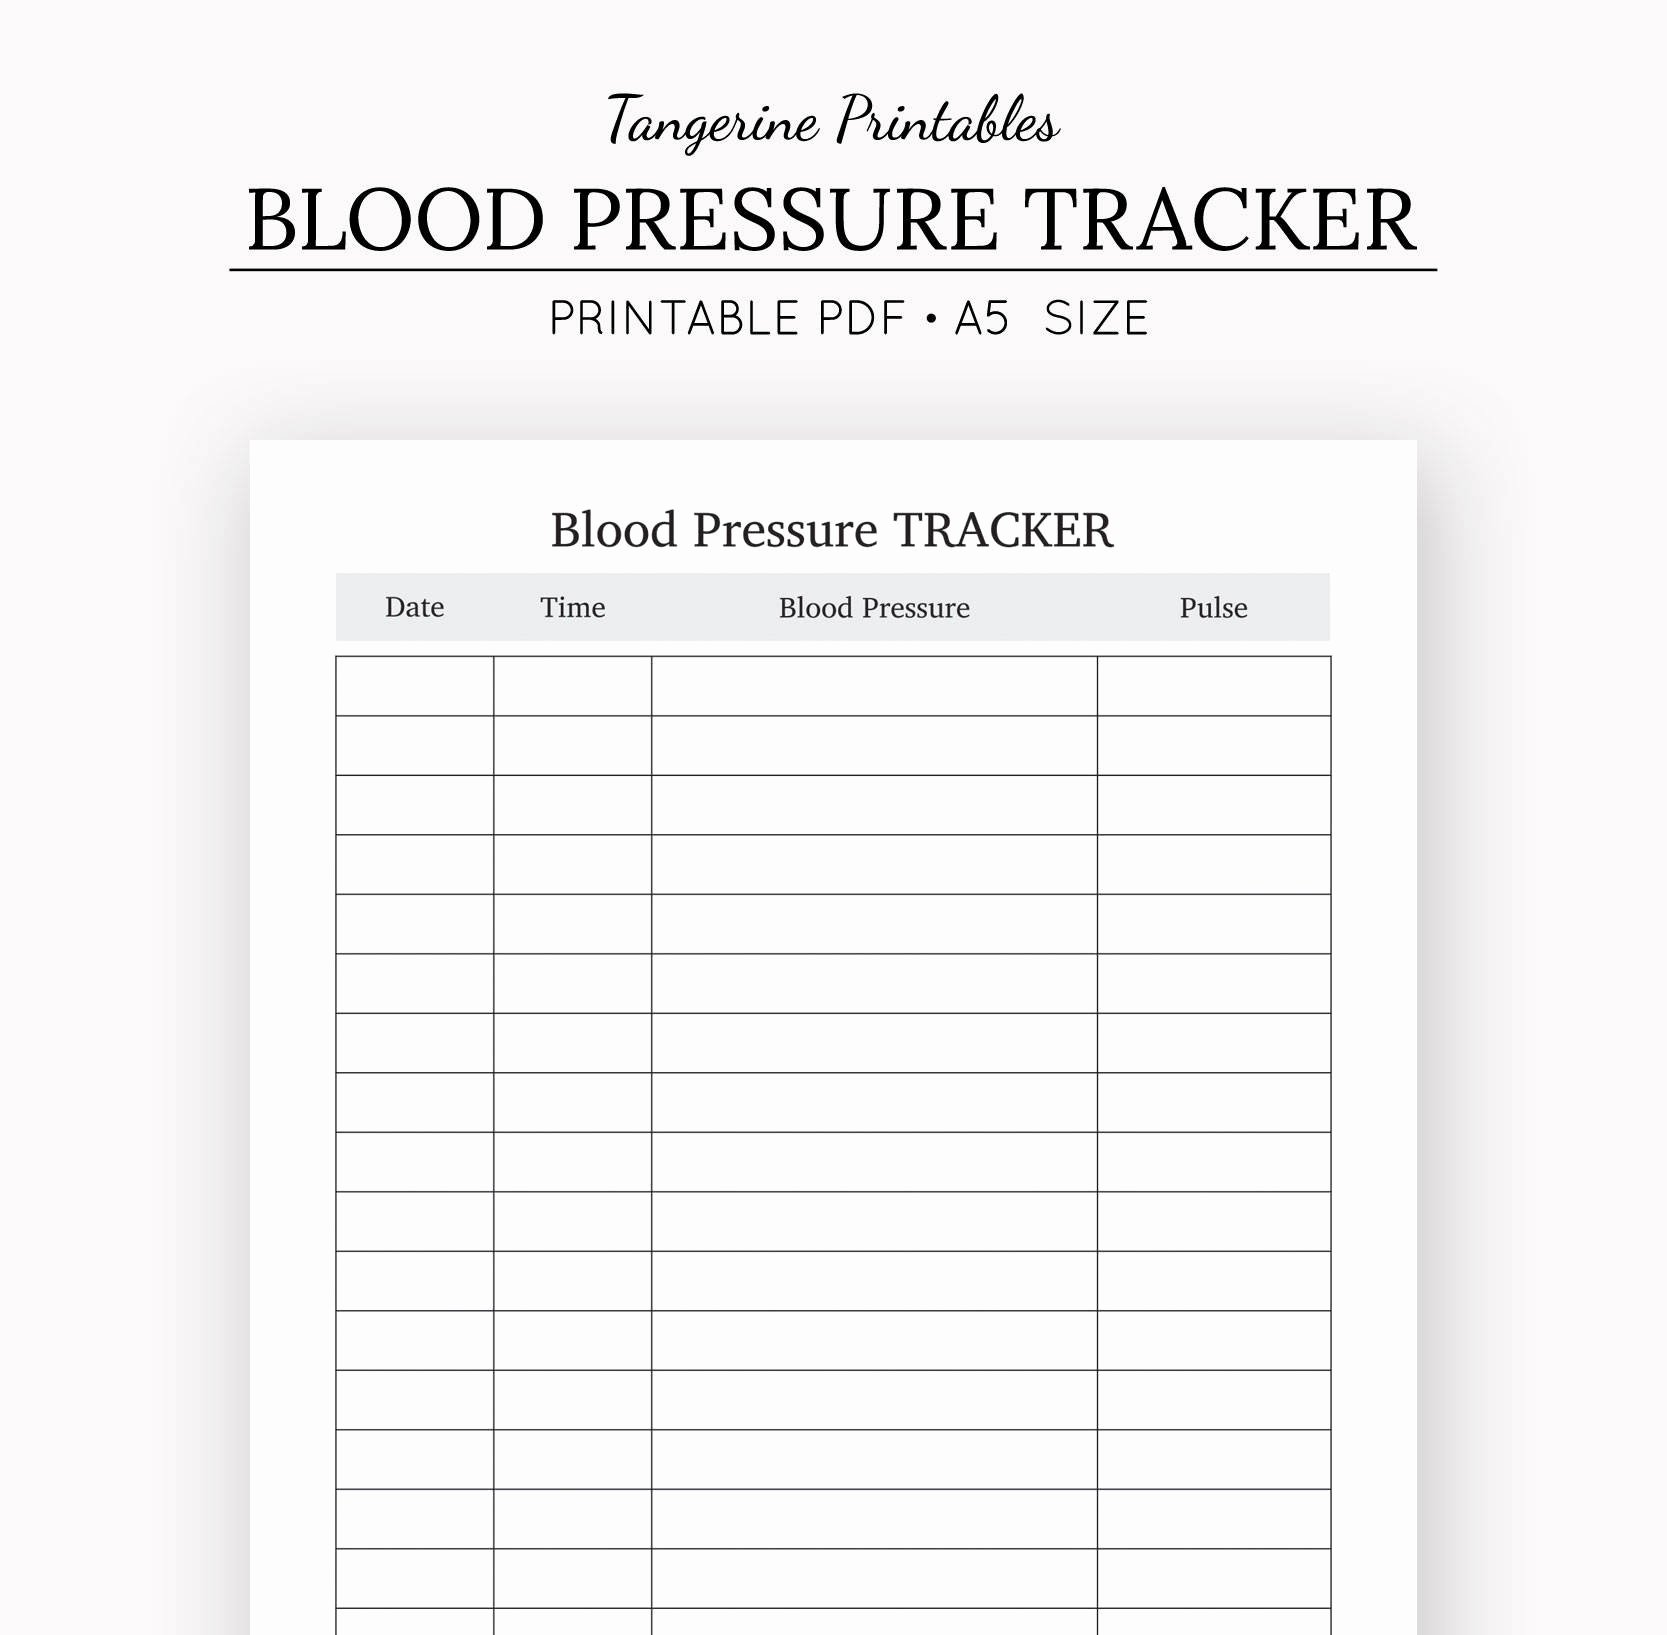 Blood Pressure Tracker Template New Blood Pressure Tracker Health Journal A5 Insert A5